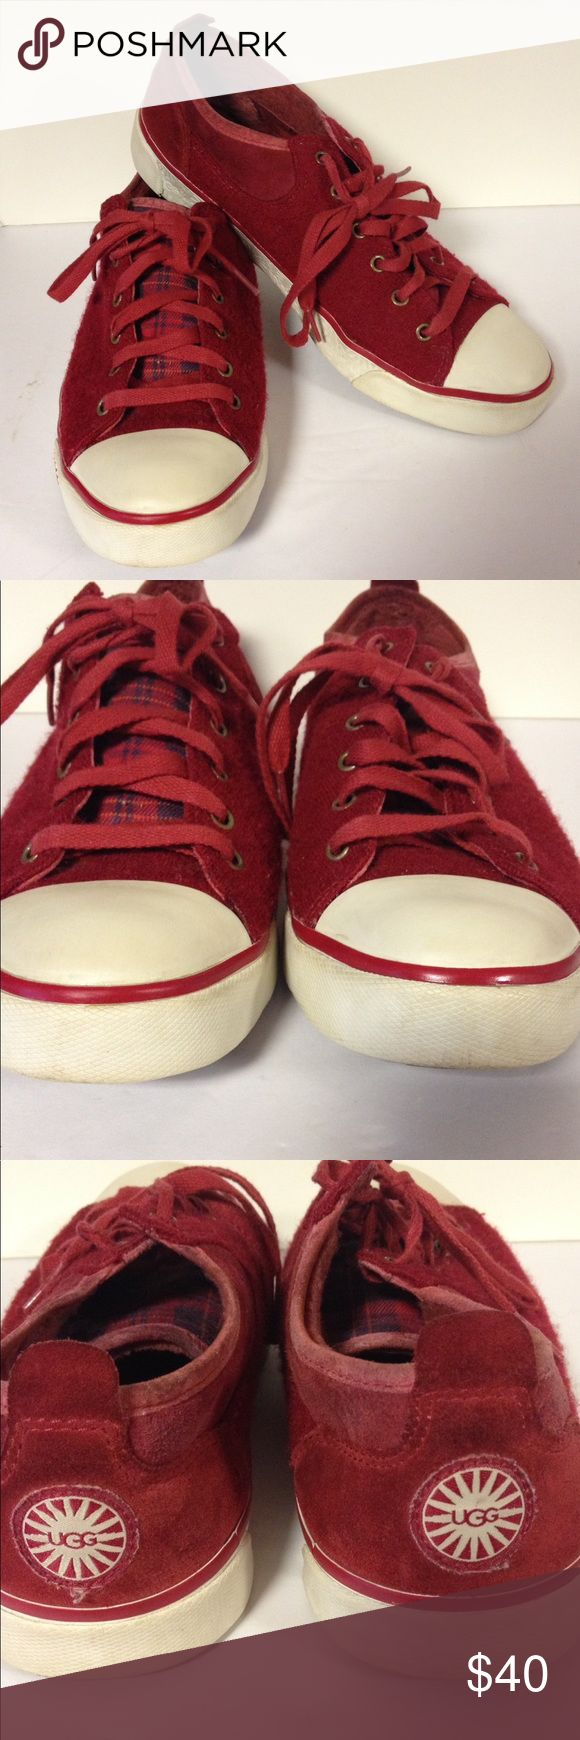 Ugg sneakers red 8 1/2 Good clean used condition.  Pet and smoke free.  Size 8 1/2 UGG Shoes Sneakers